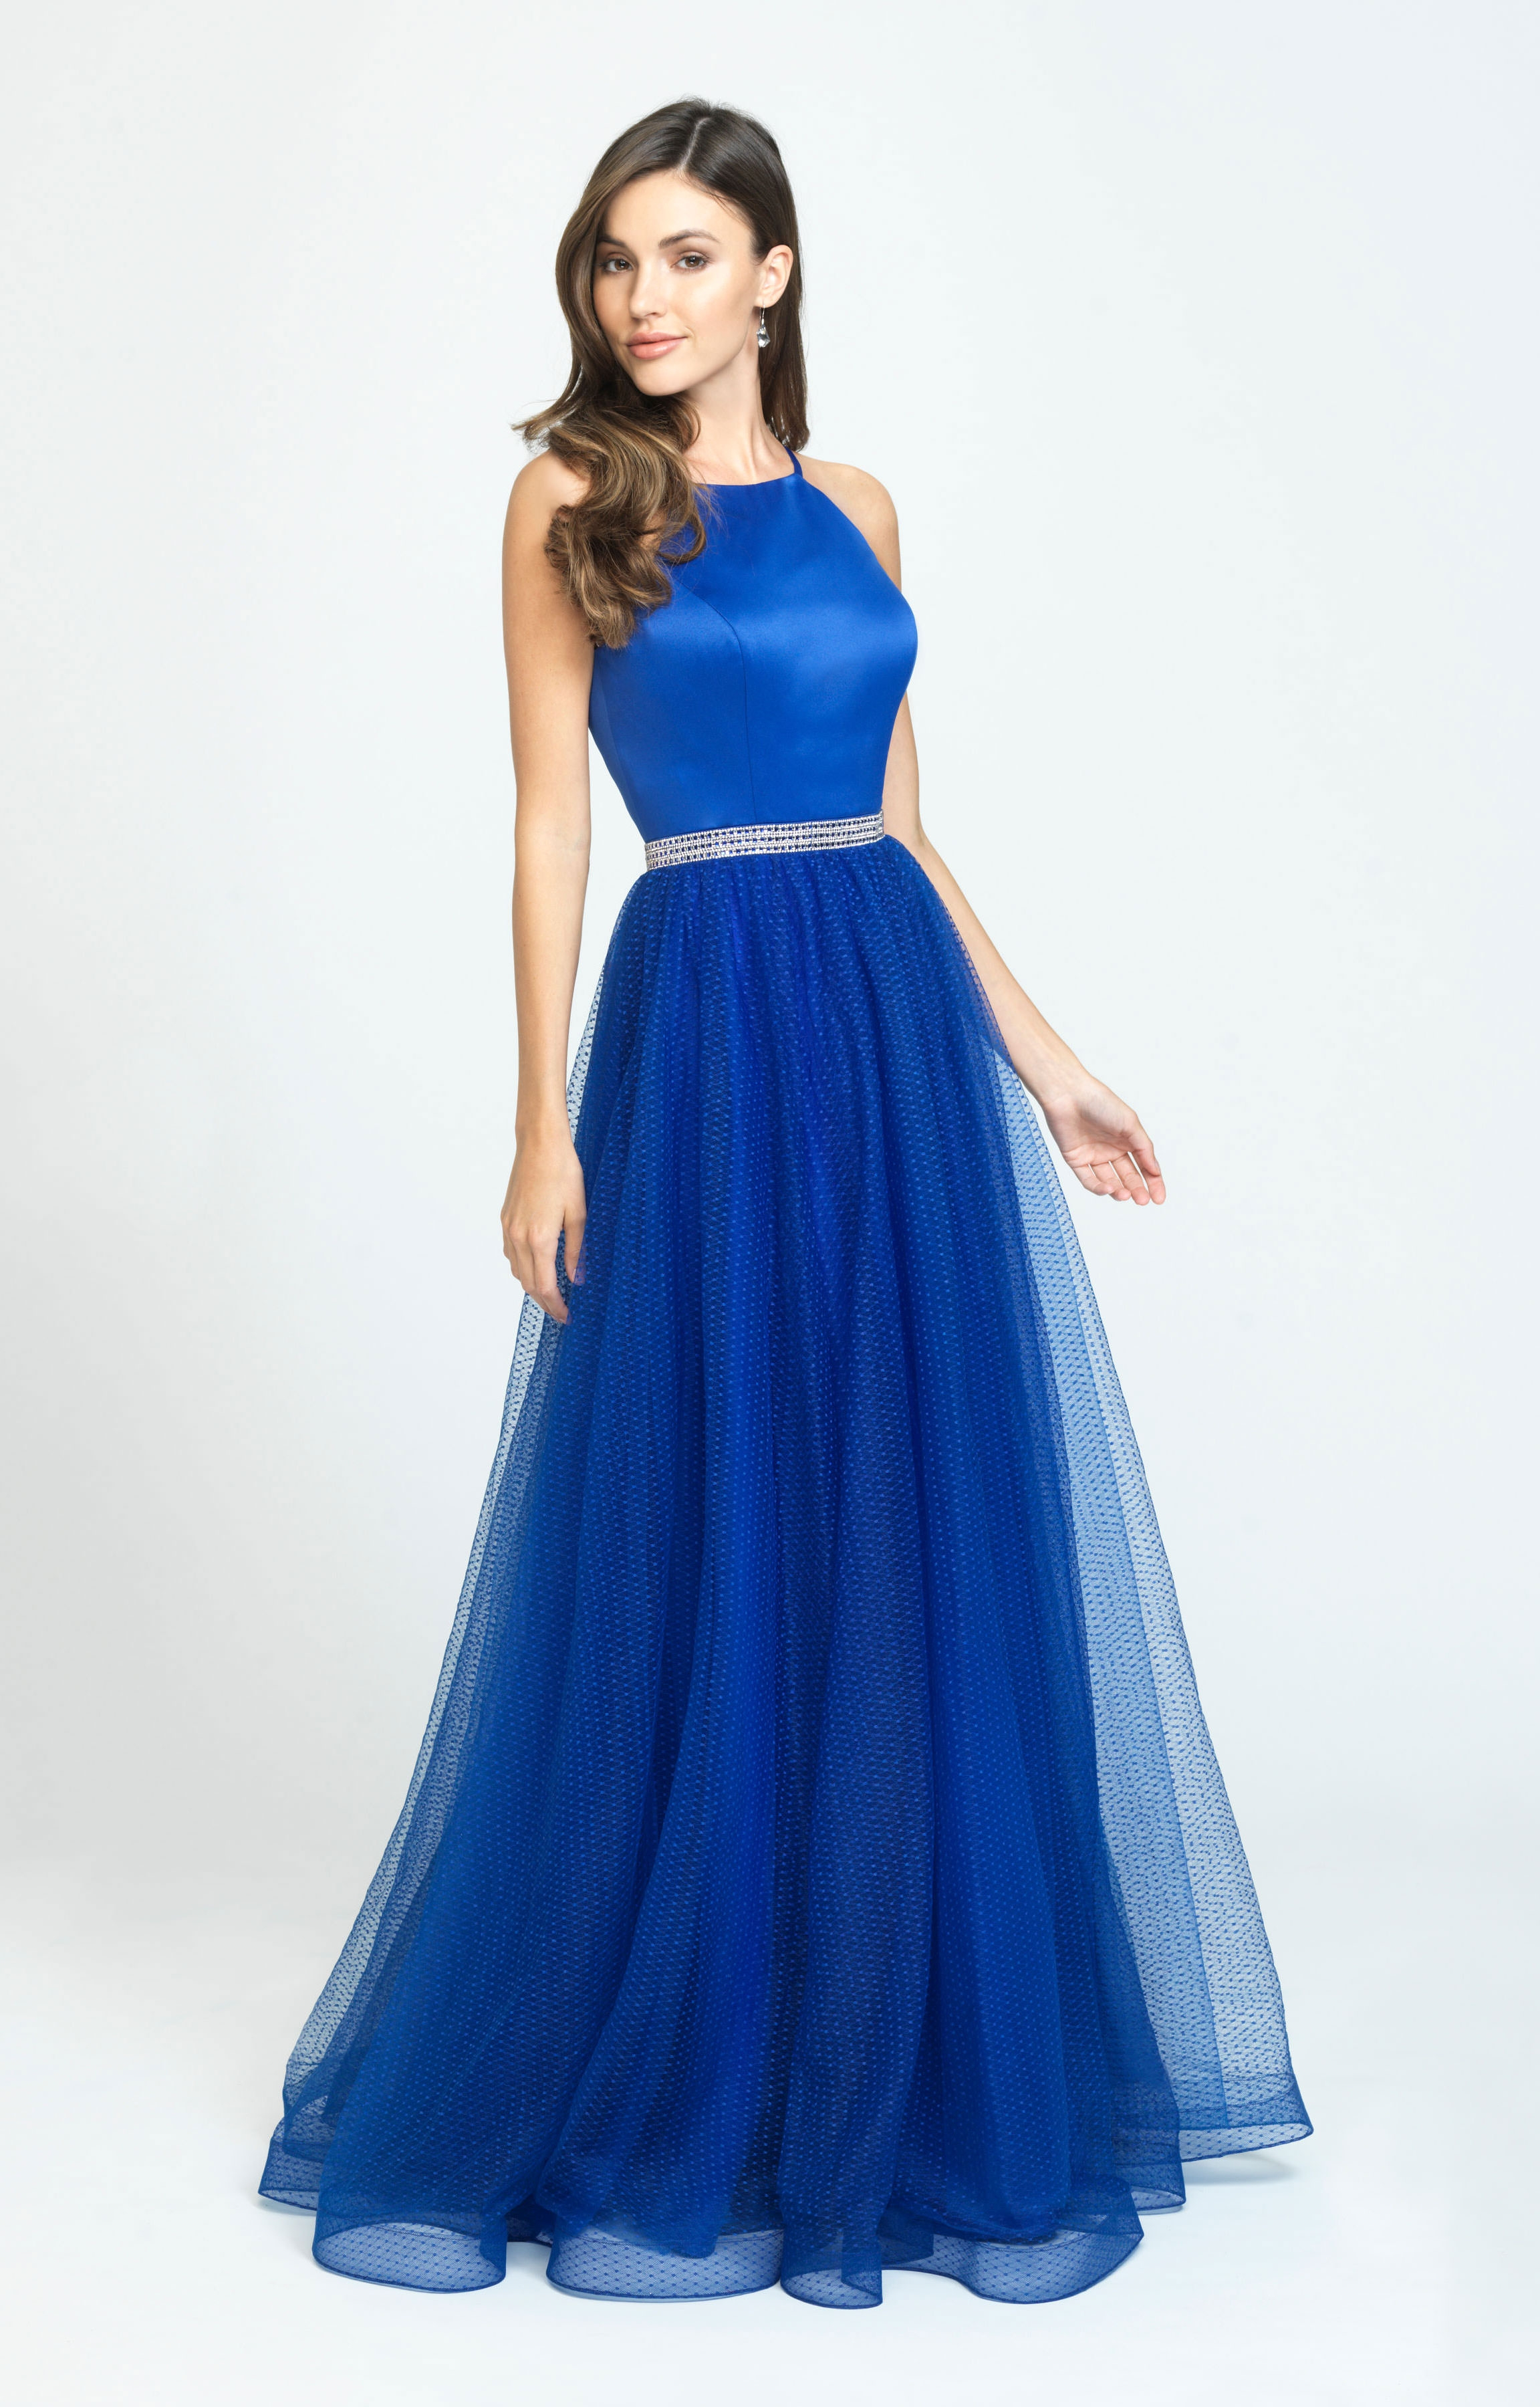 7c7afc2daa Madison James 19196. Classy and Elegant Halter A-Line Satin and Tulle Gown